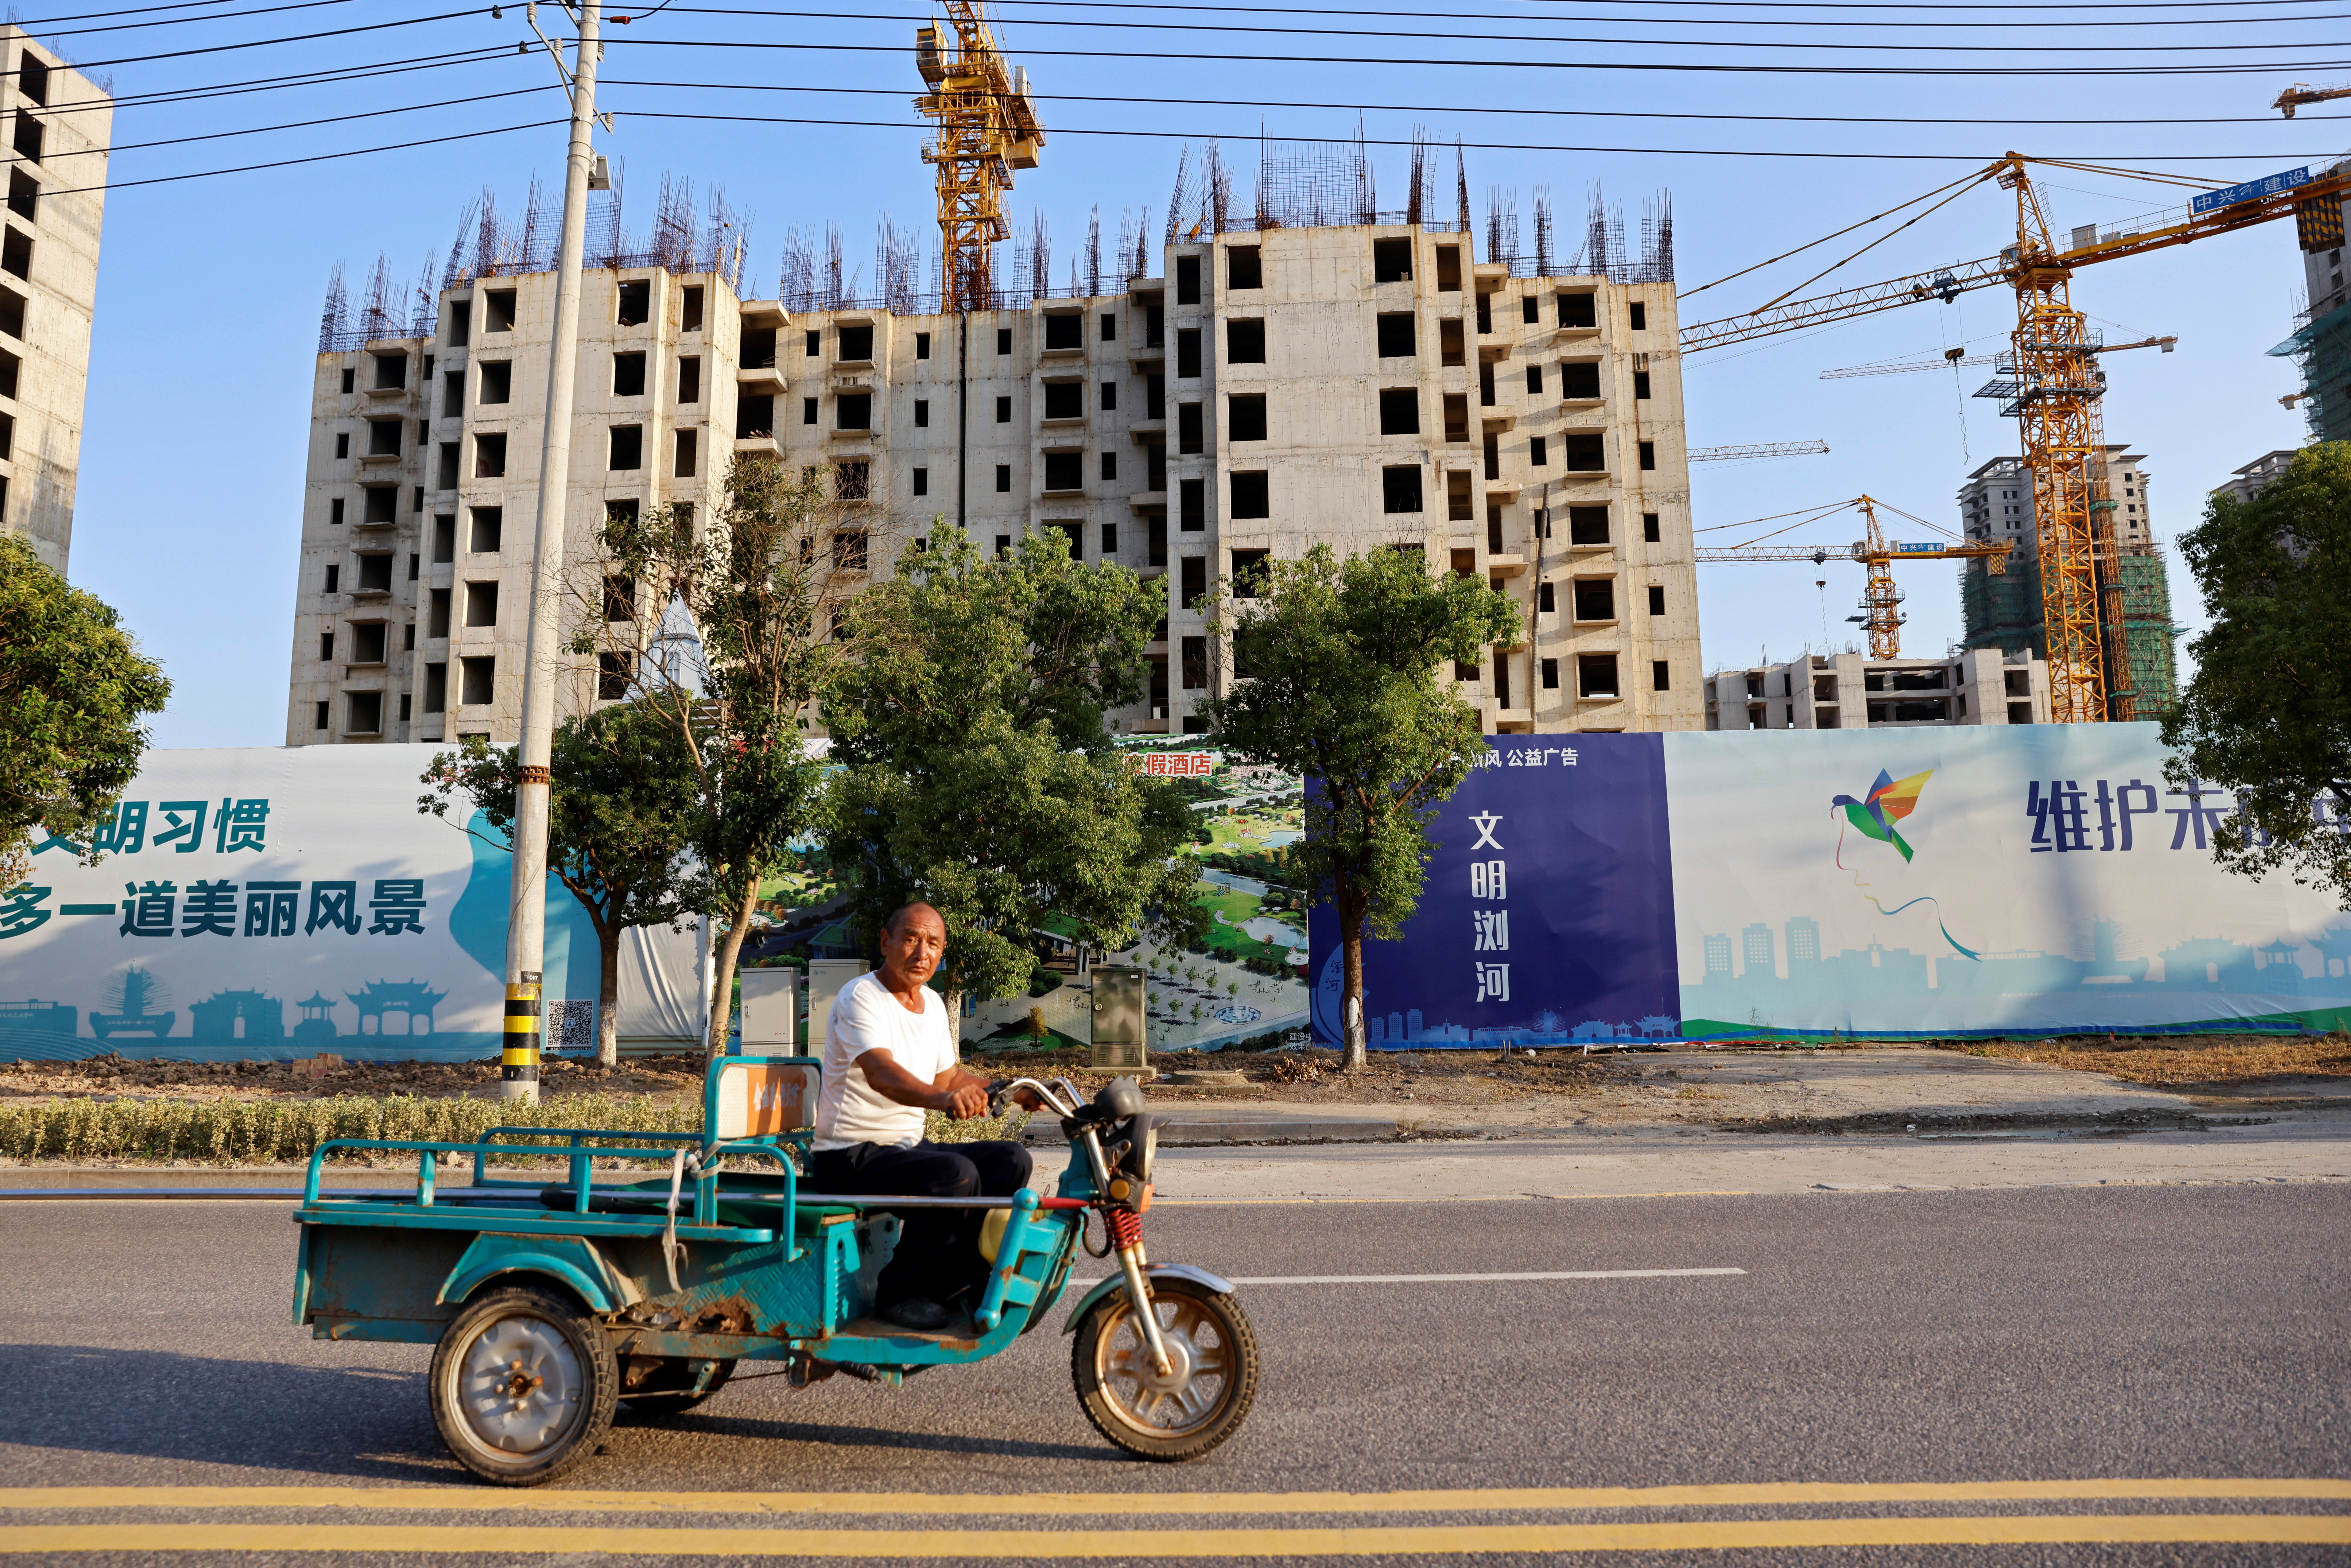 A man rides a vehicle past the construction site of Evergrande Cultural Tourism City, a project developed by China Evergrande Group, in Suzhou's Taicang, Jiangsu province, China September 23, 2021. REUTERS/Aly Song